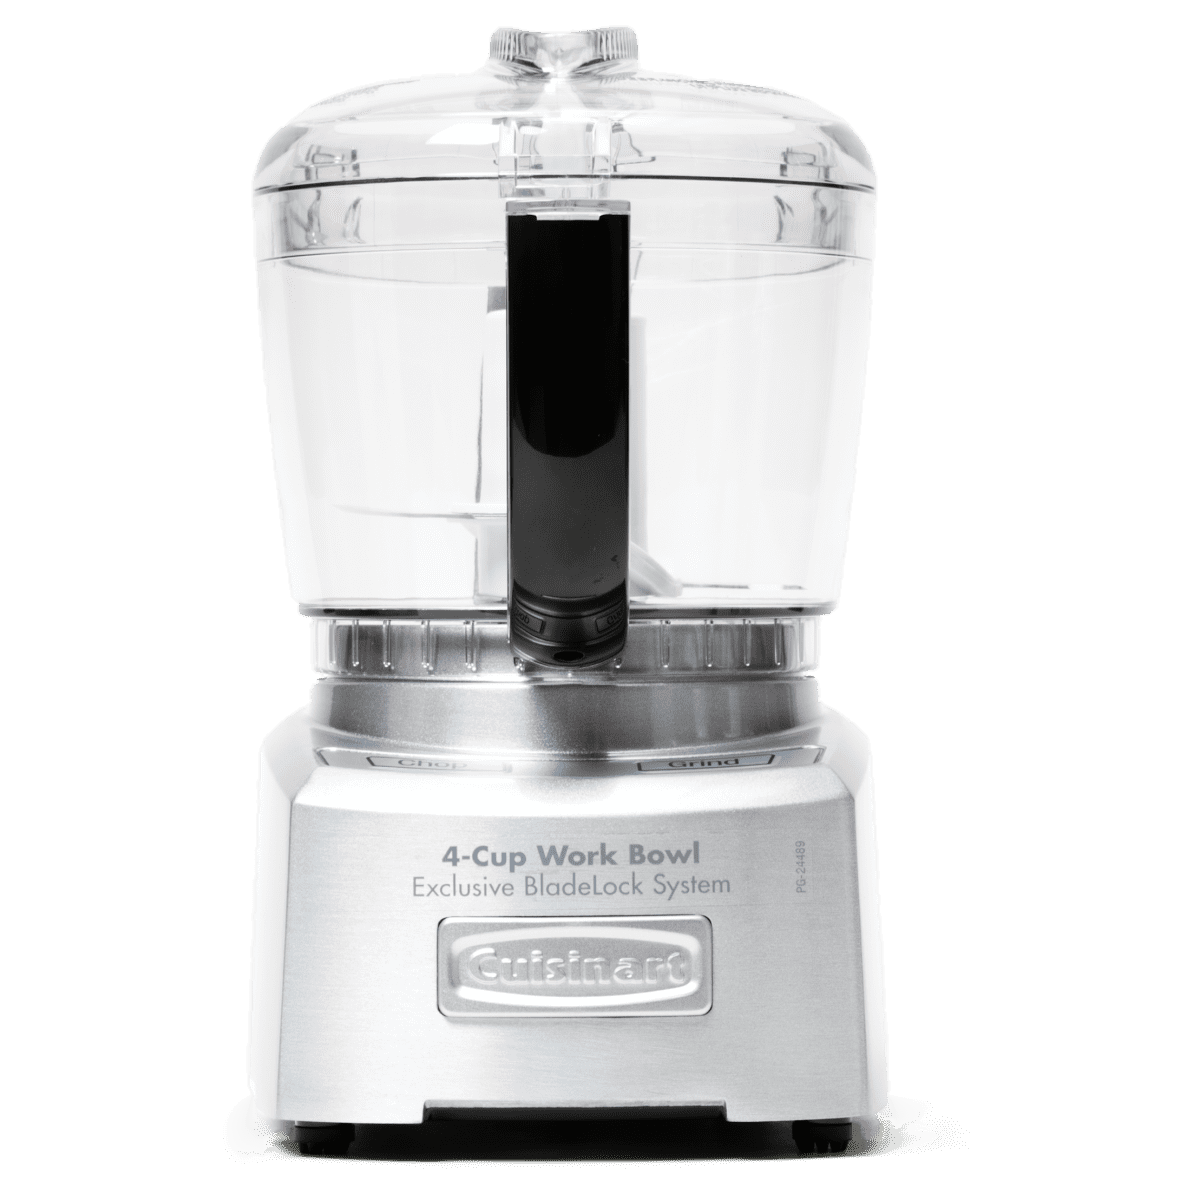 Super The Best Small Food Processors Cooks Illustrated Interior Design Ideas Gresisoteloinfo